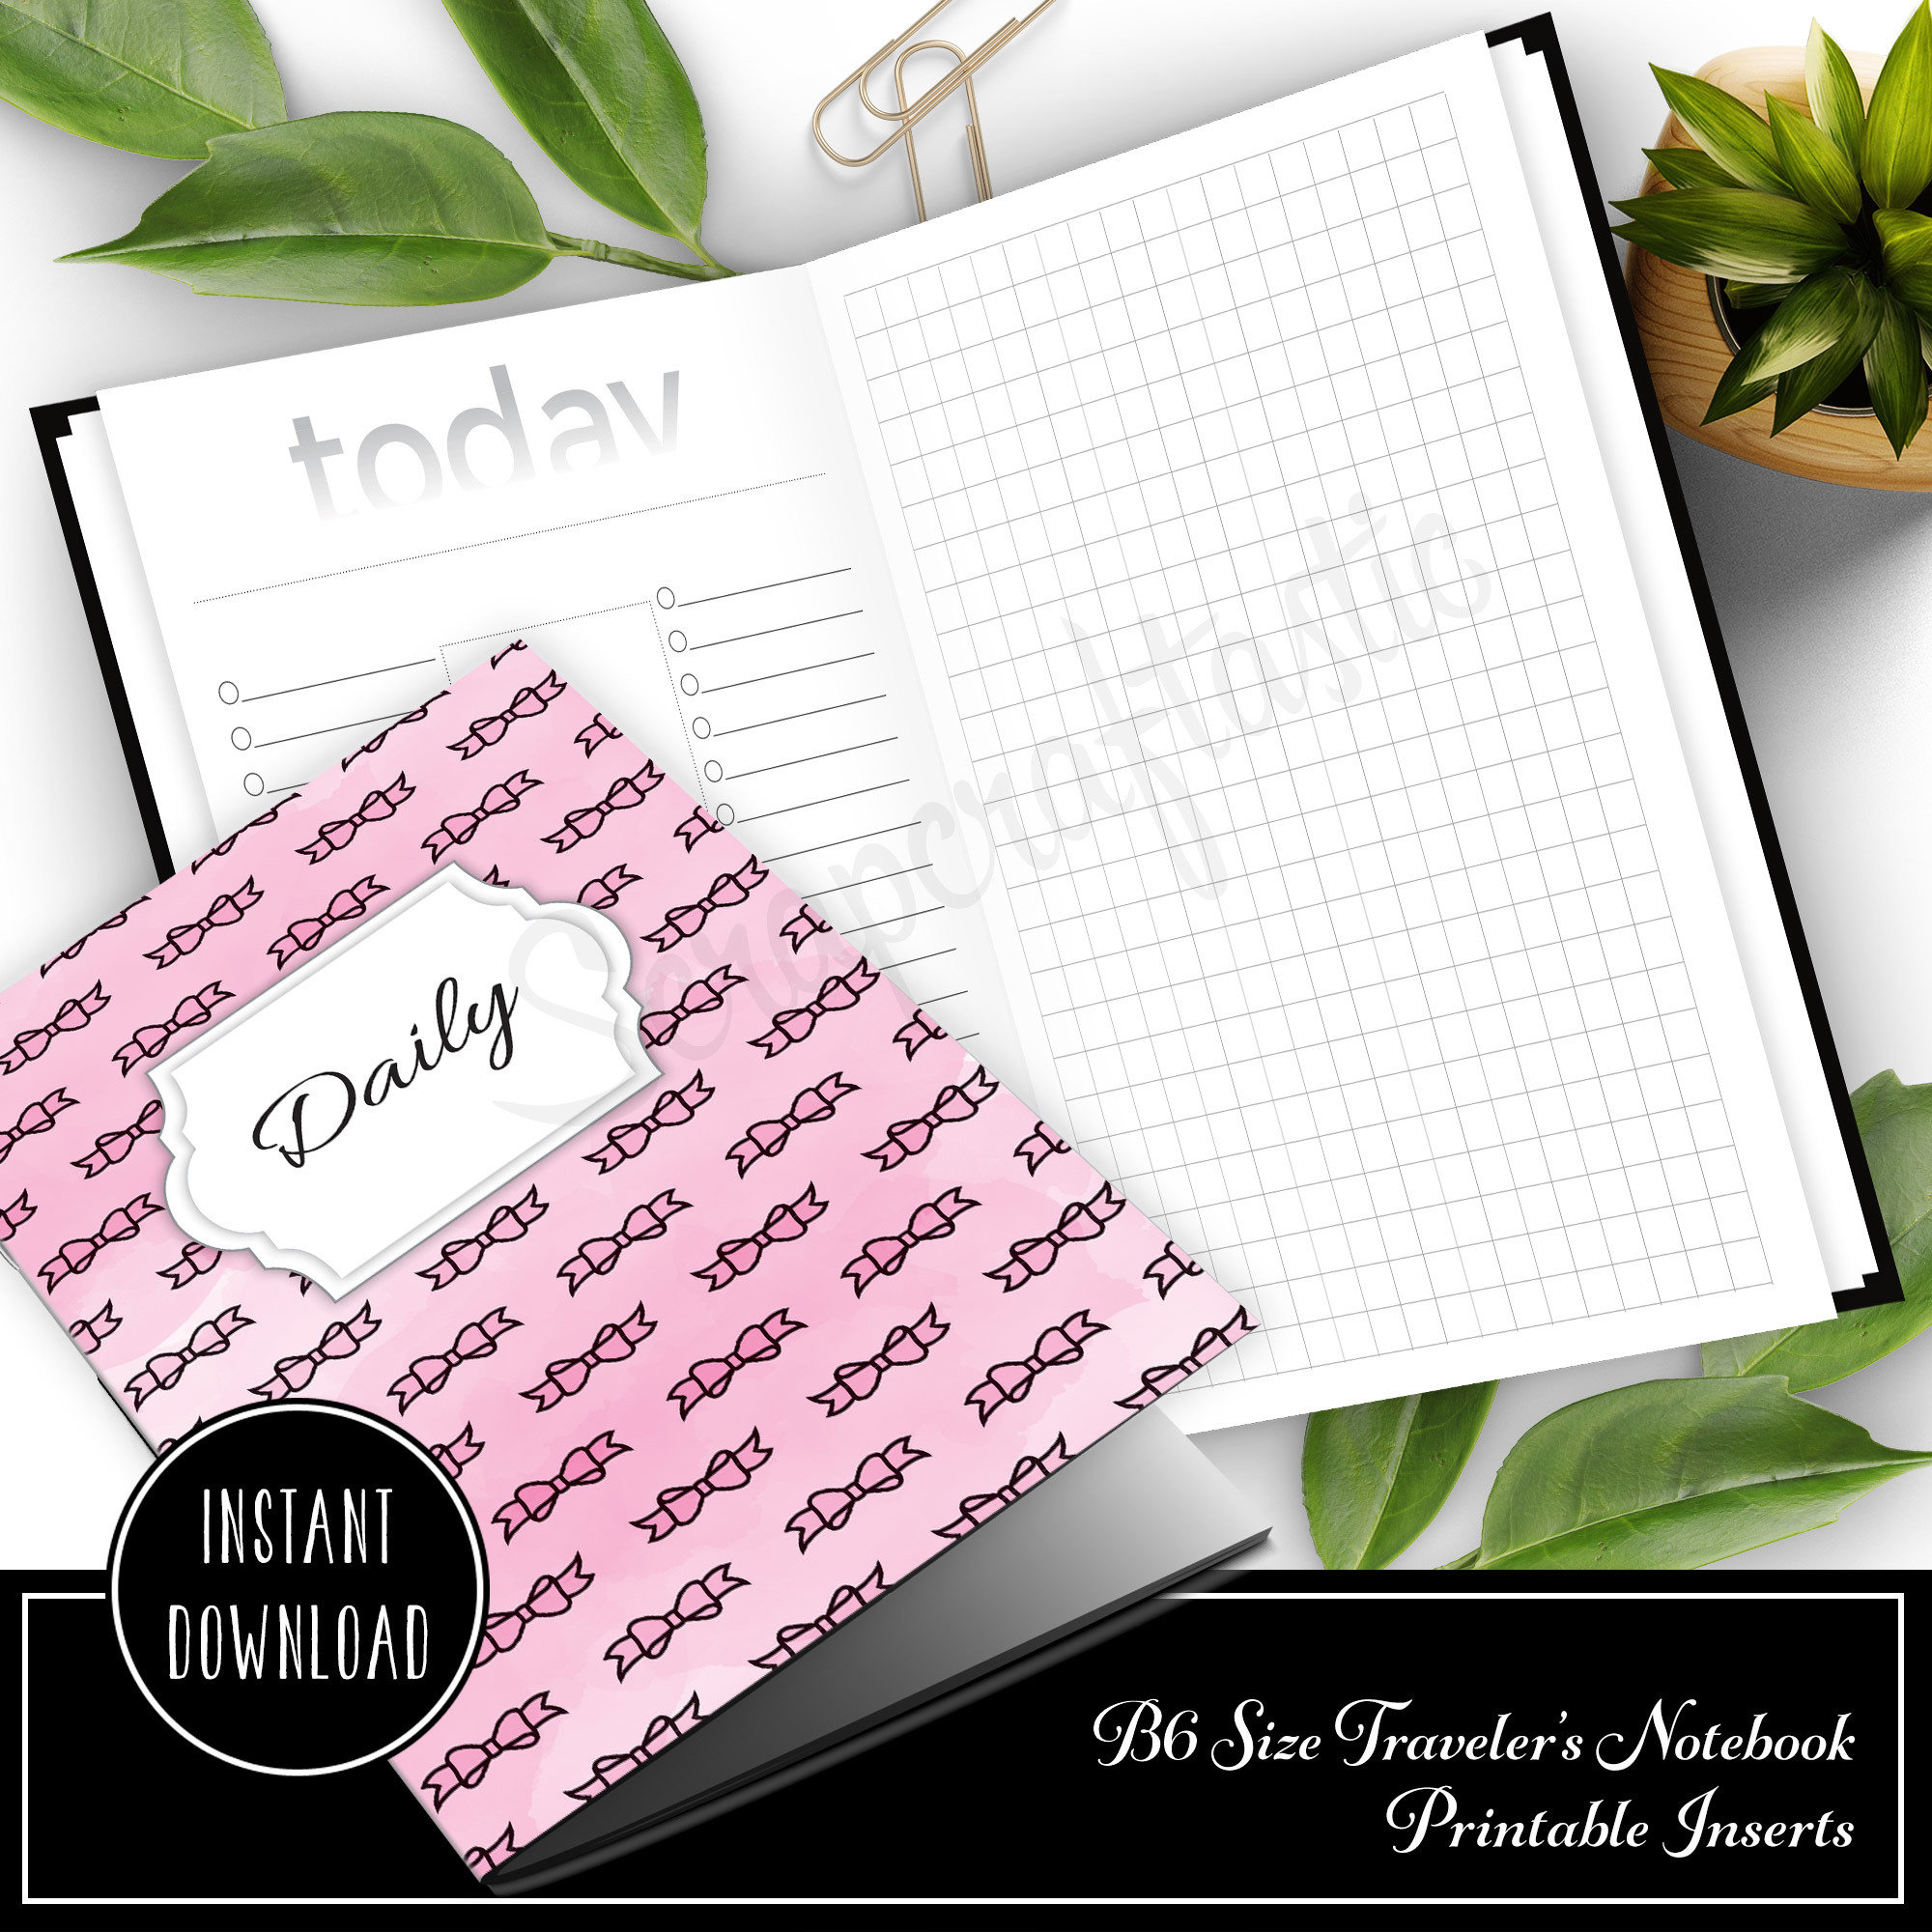 Daily Lists, Column and Grid B6 Traveler's Notebook Printable Inserts 50025